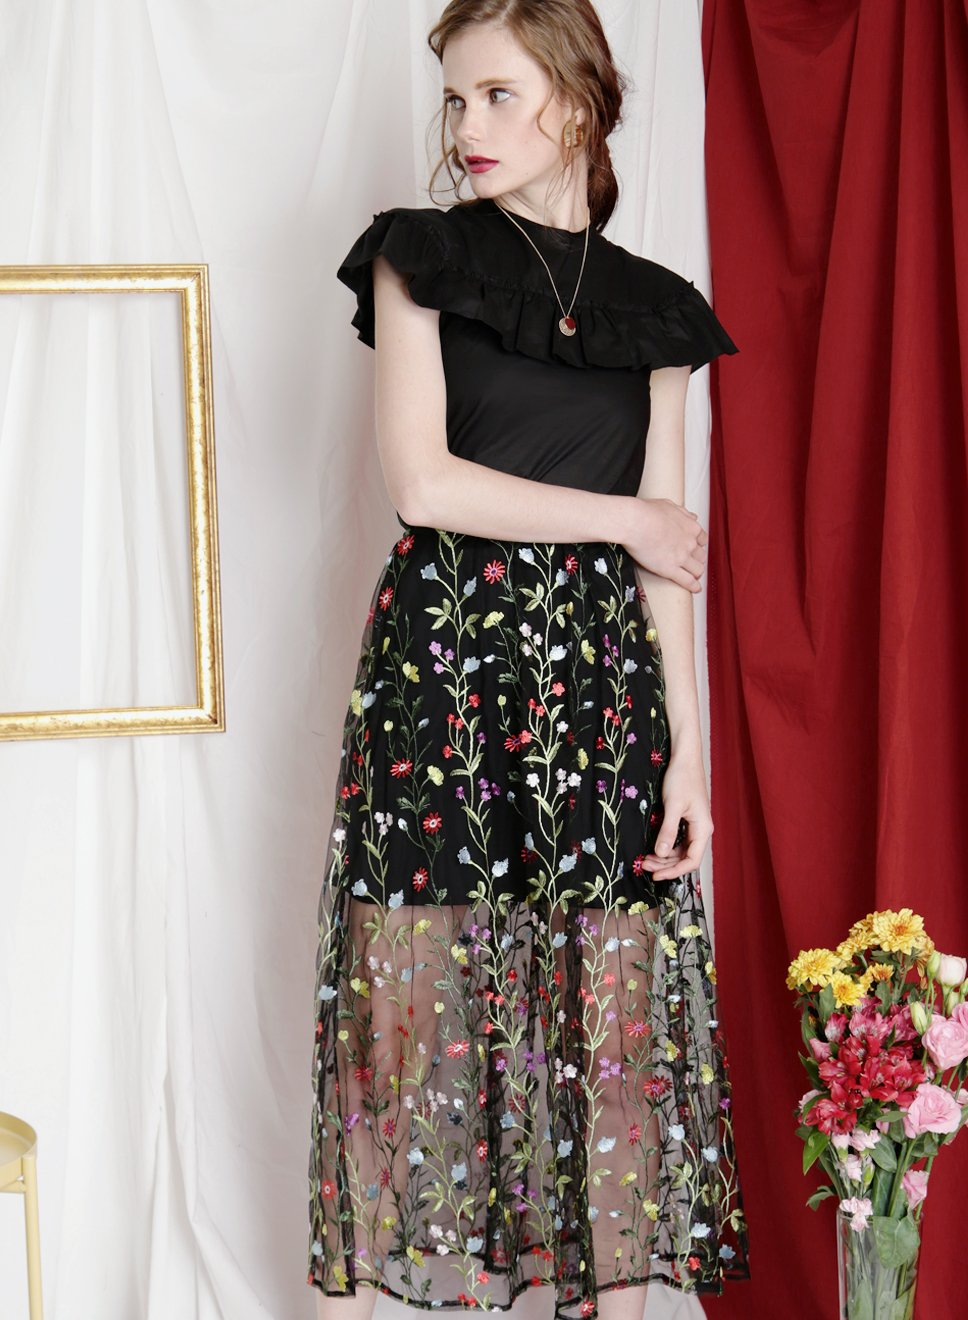 GLIMMER Embroidered Mesh Skirt (Black) at $ 28.50 only sold at And Well Dressed Online Fashion Store Singapore